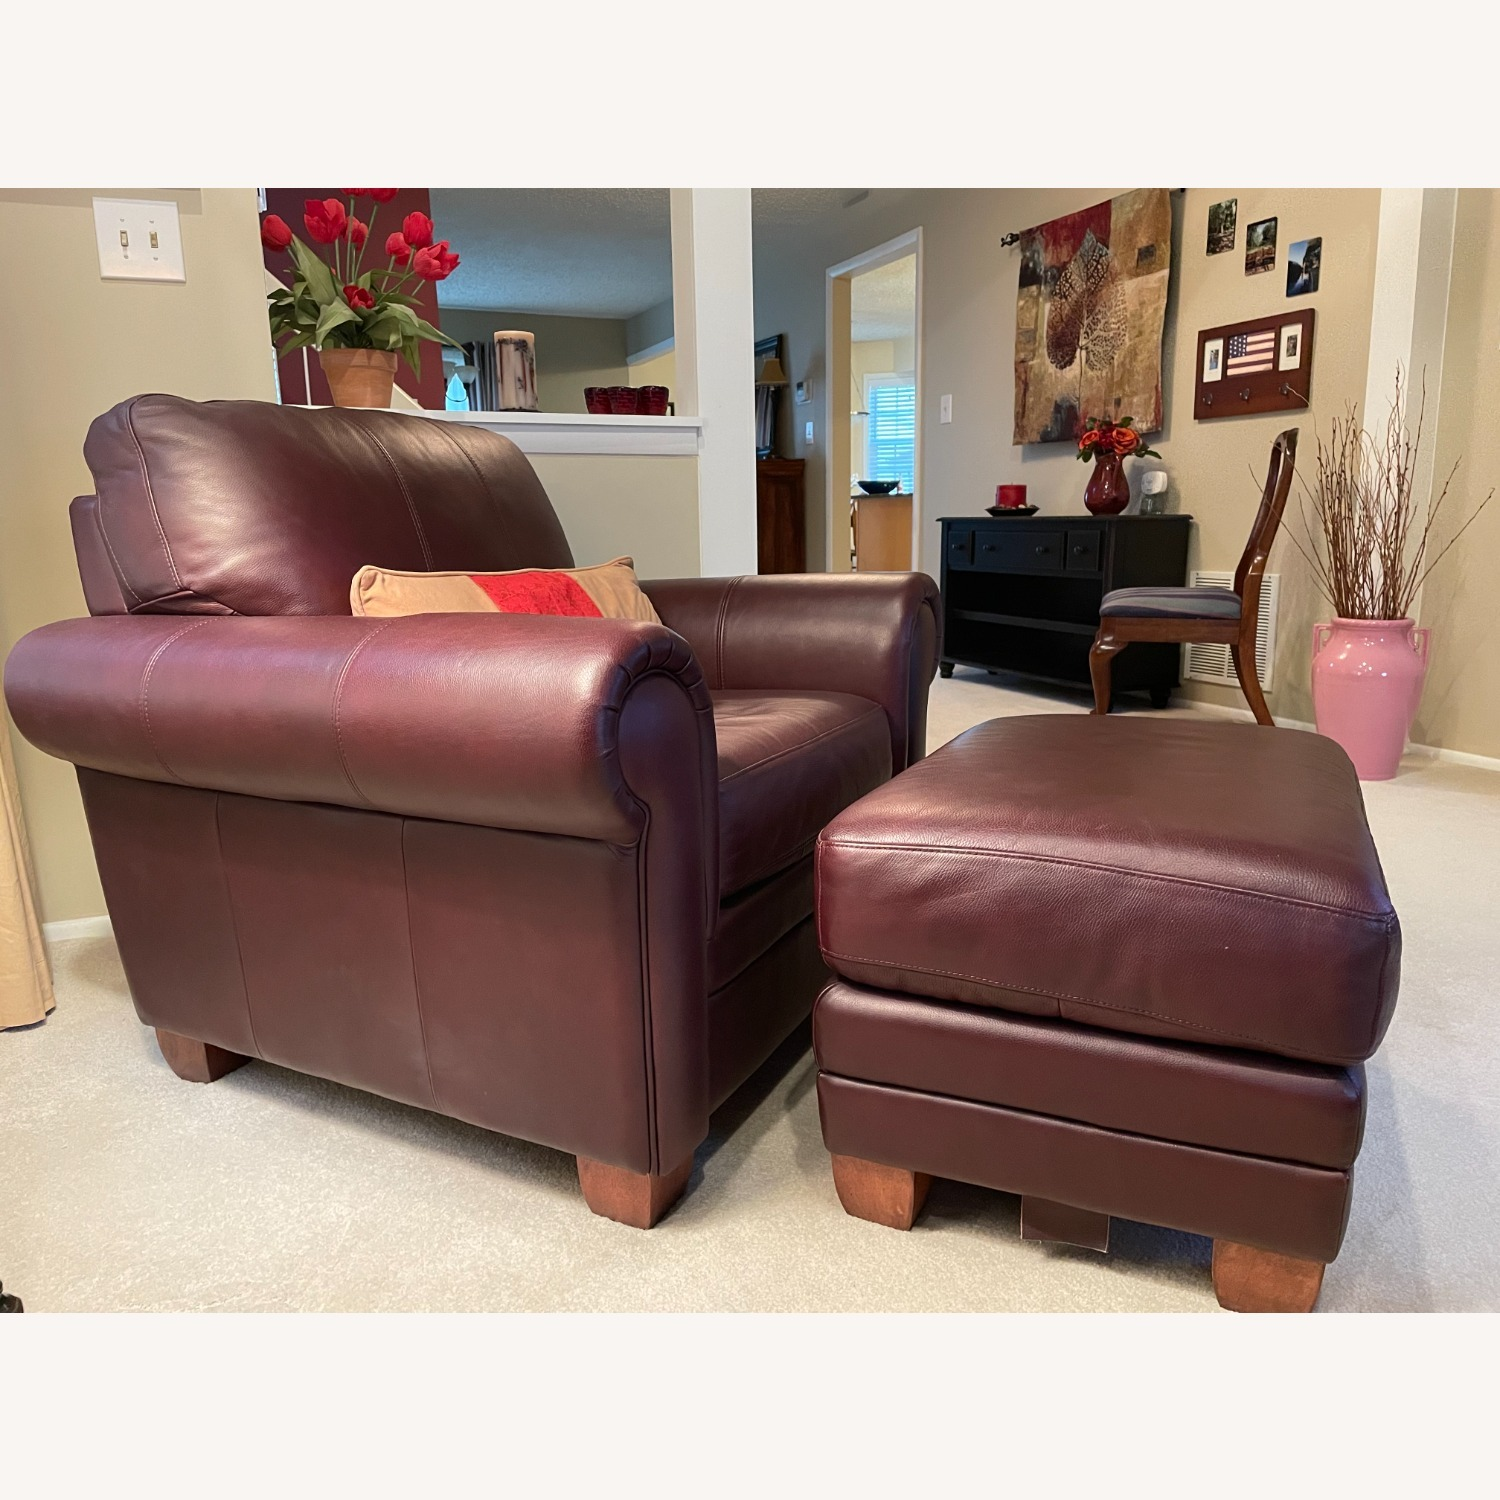 Ethan Allen Leather Chair & Ottoman - image-2